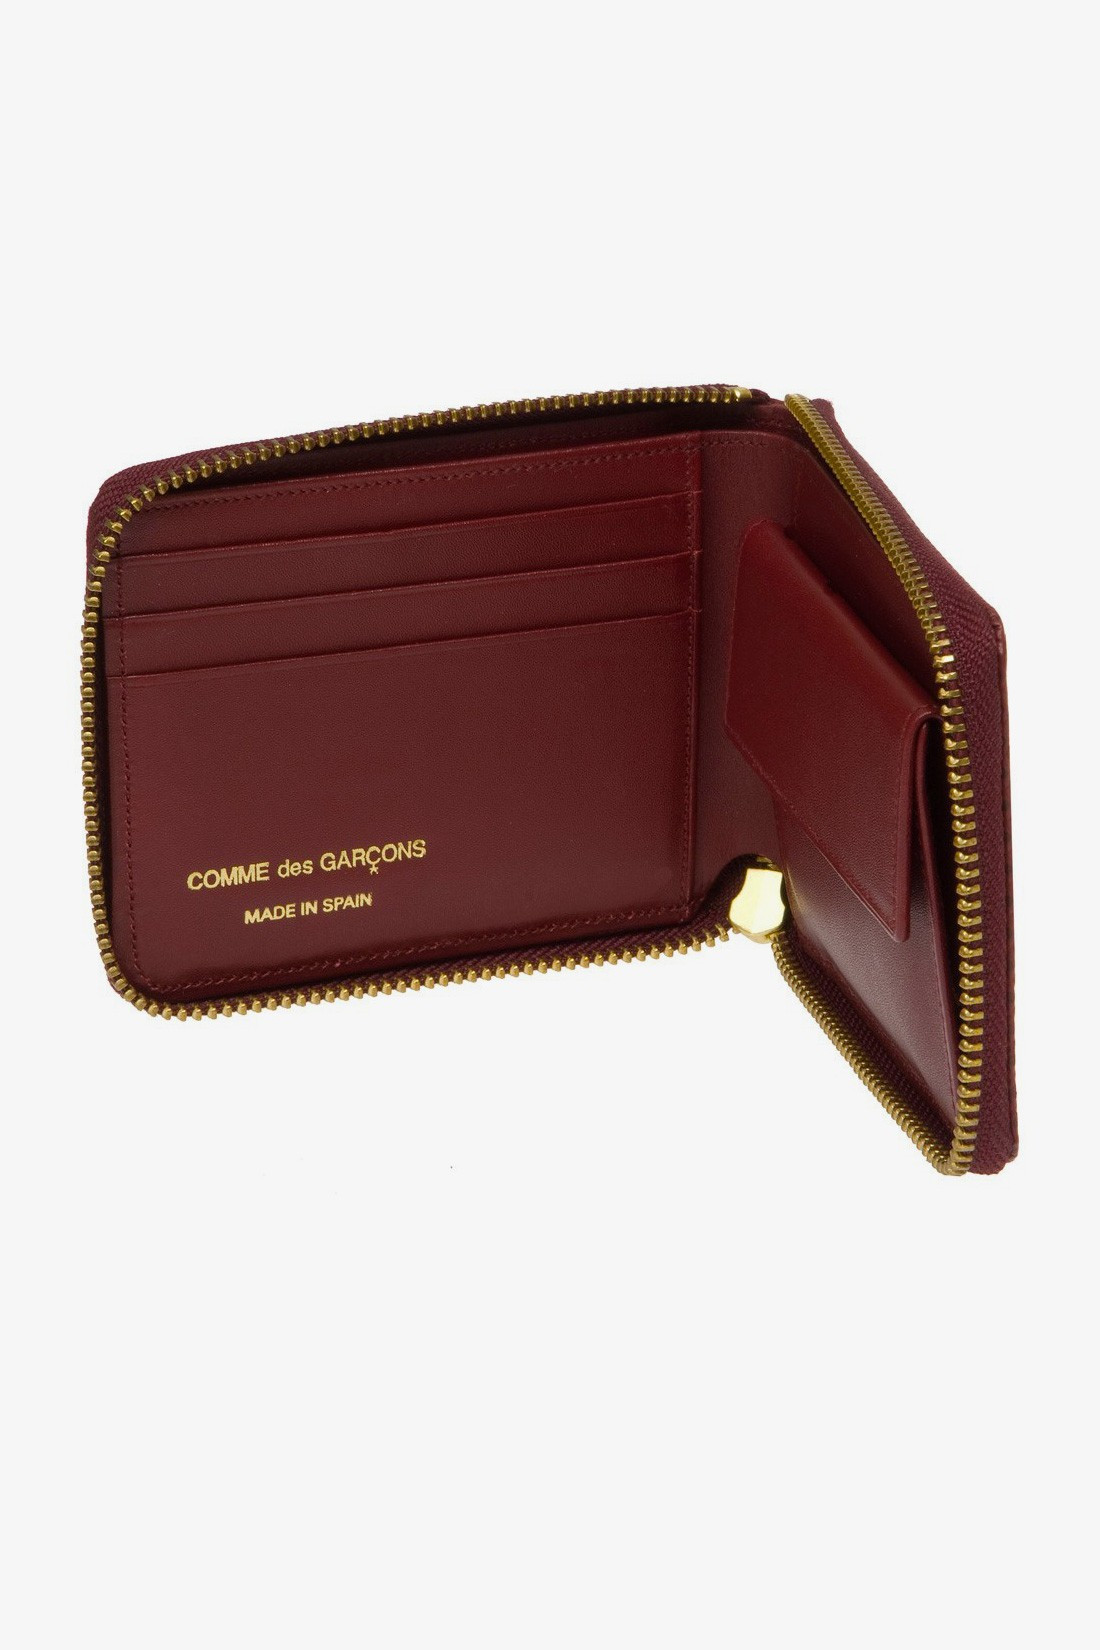 CDG WALLETS / Cdg luxury group sa7100lg Burgundy